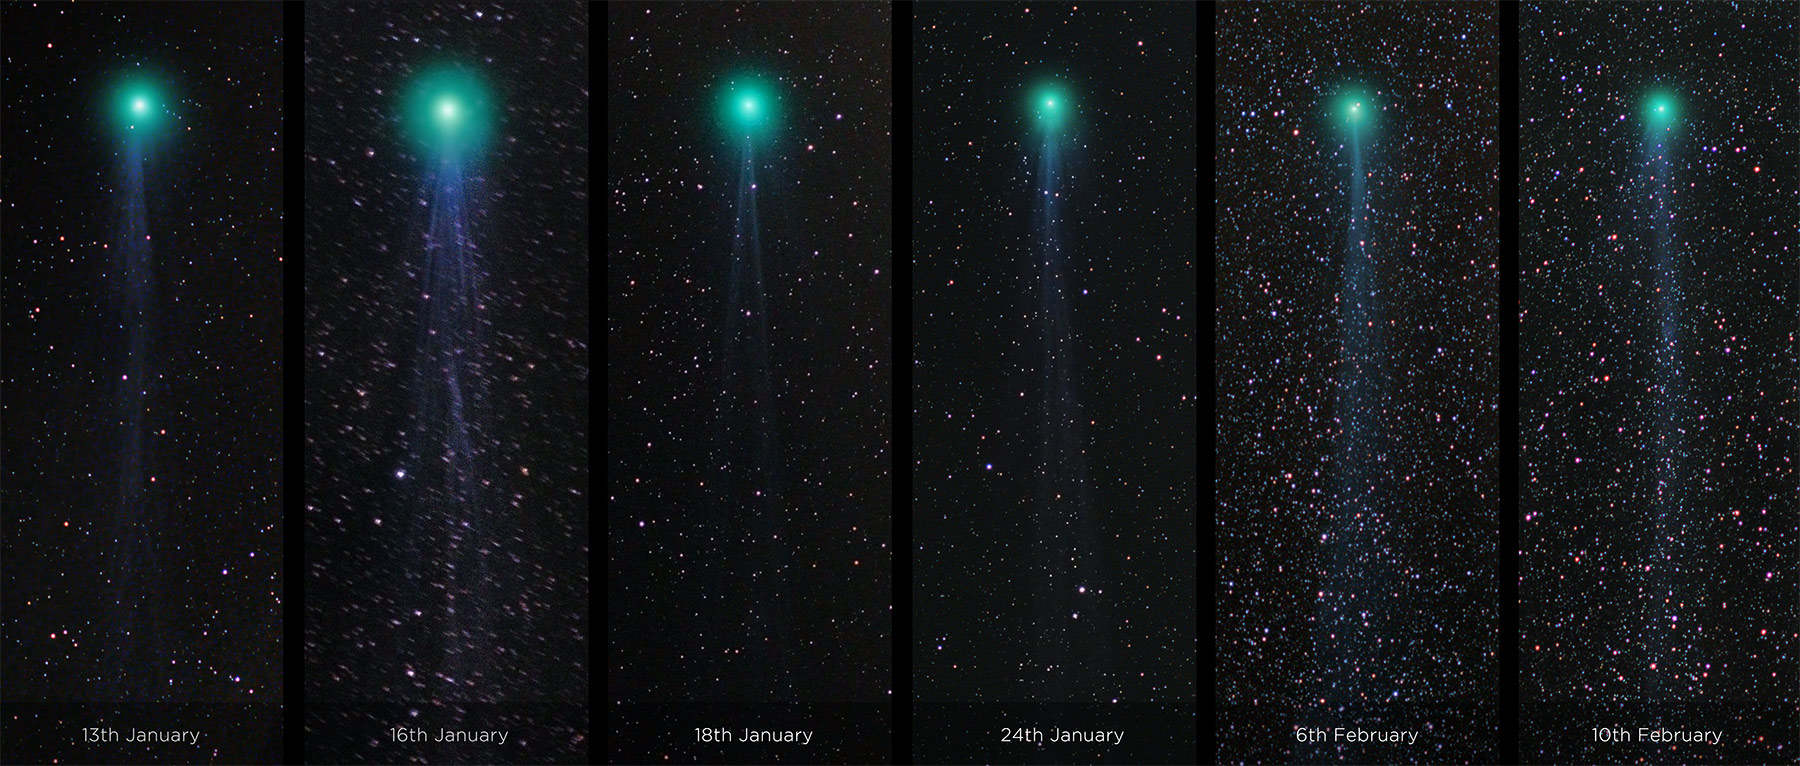 Evolution of comet Lovejoy